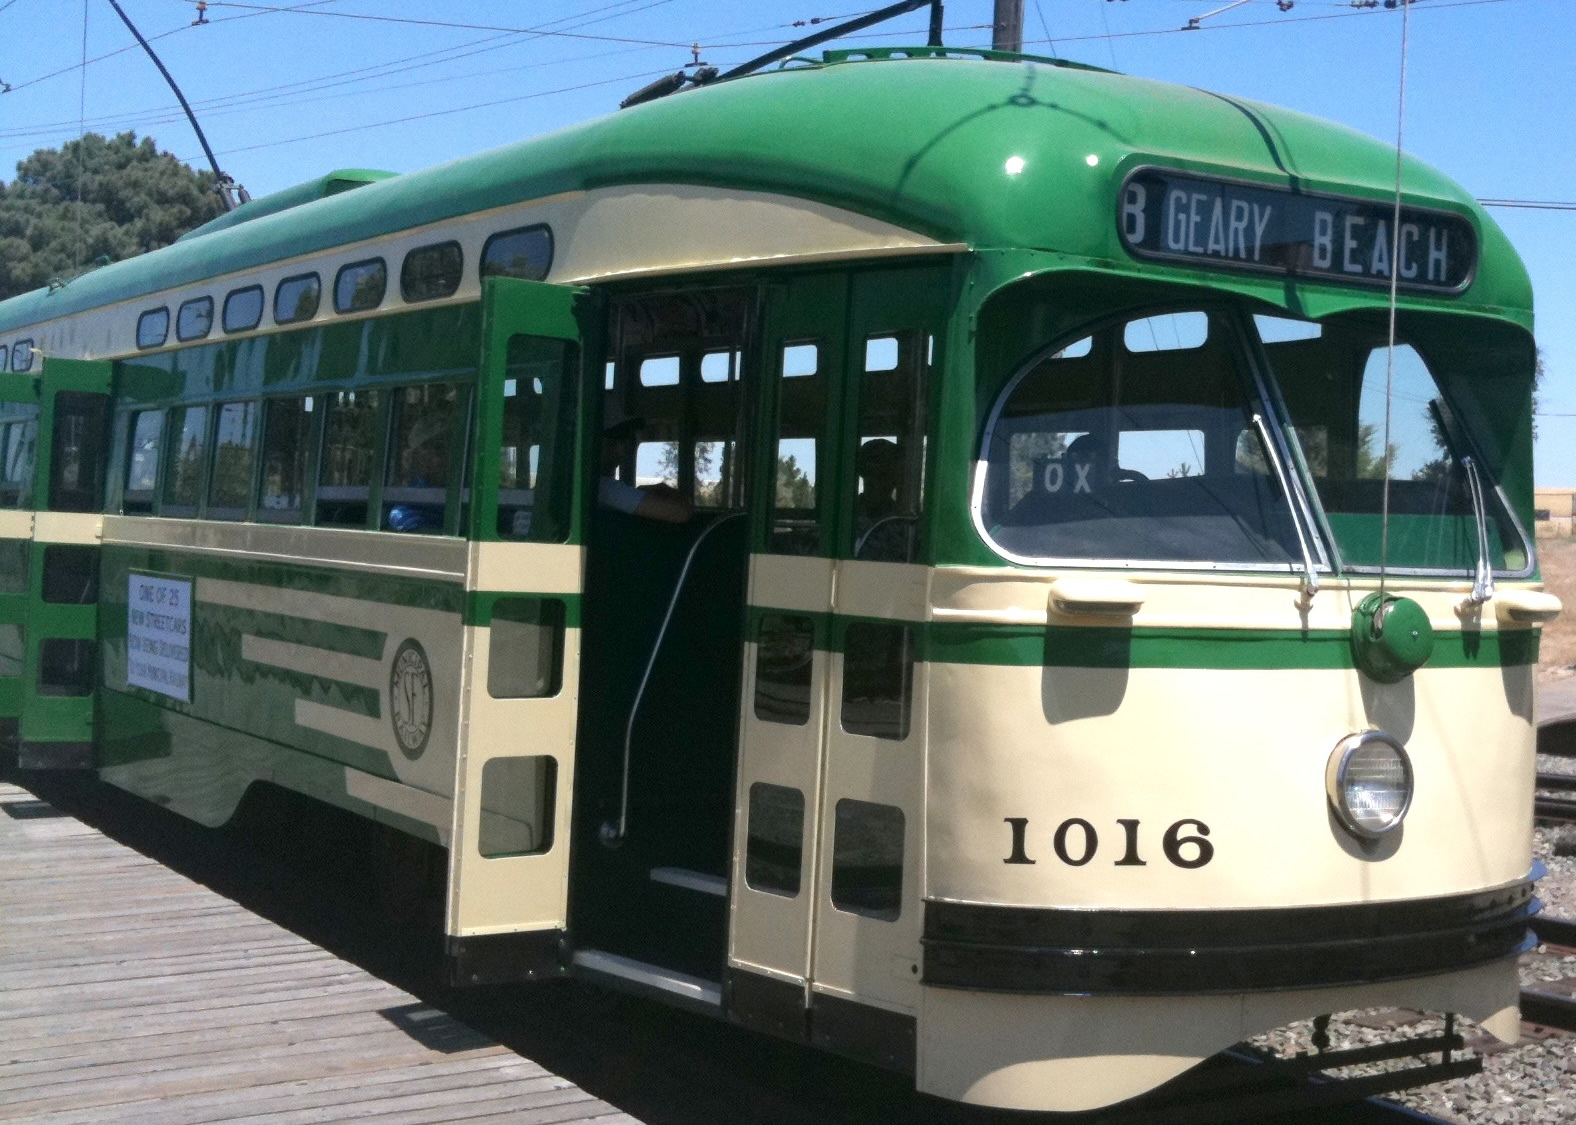 Beautiful PCC 1016